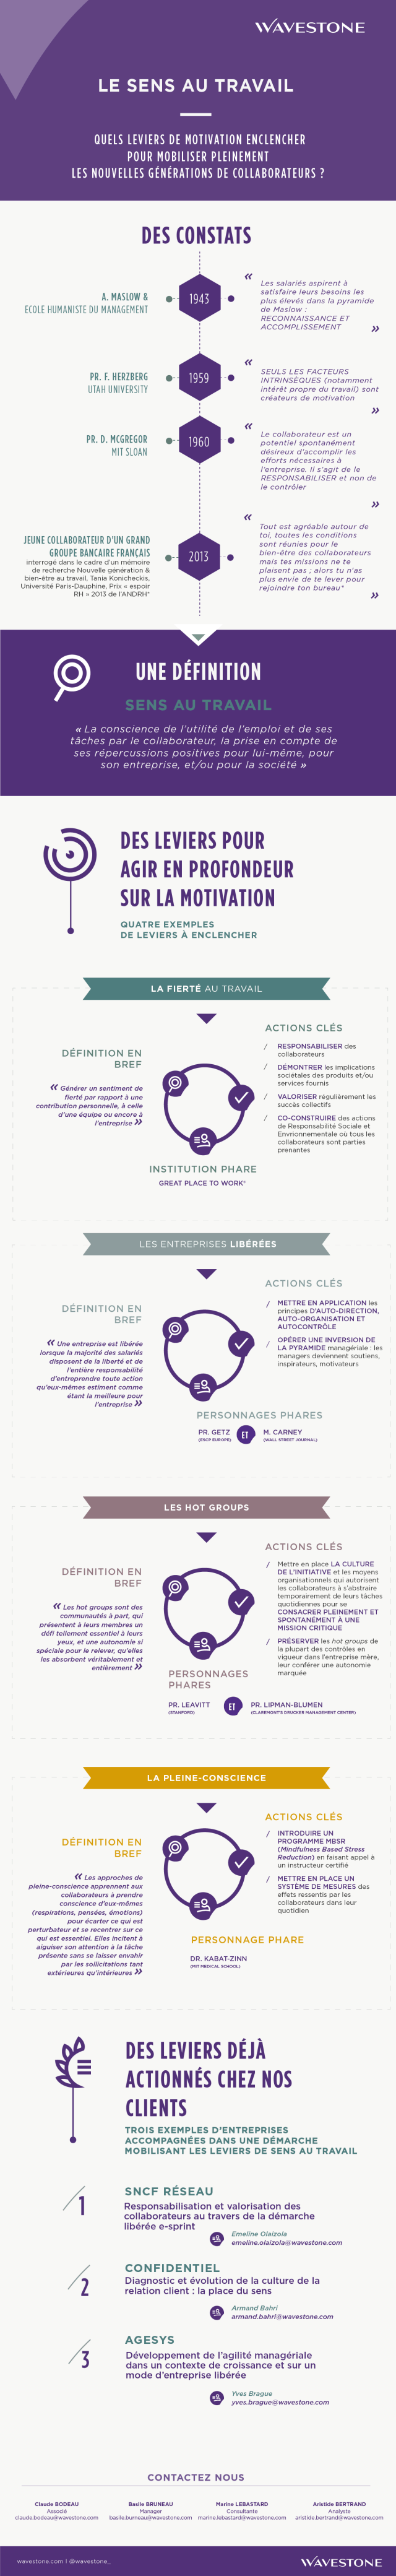 Infographie Motivation&sens au travail - mars 2017- Blog RH - VF